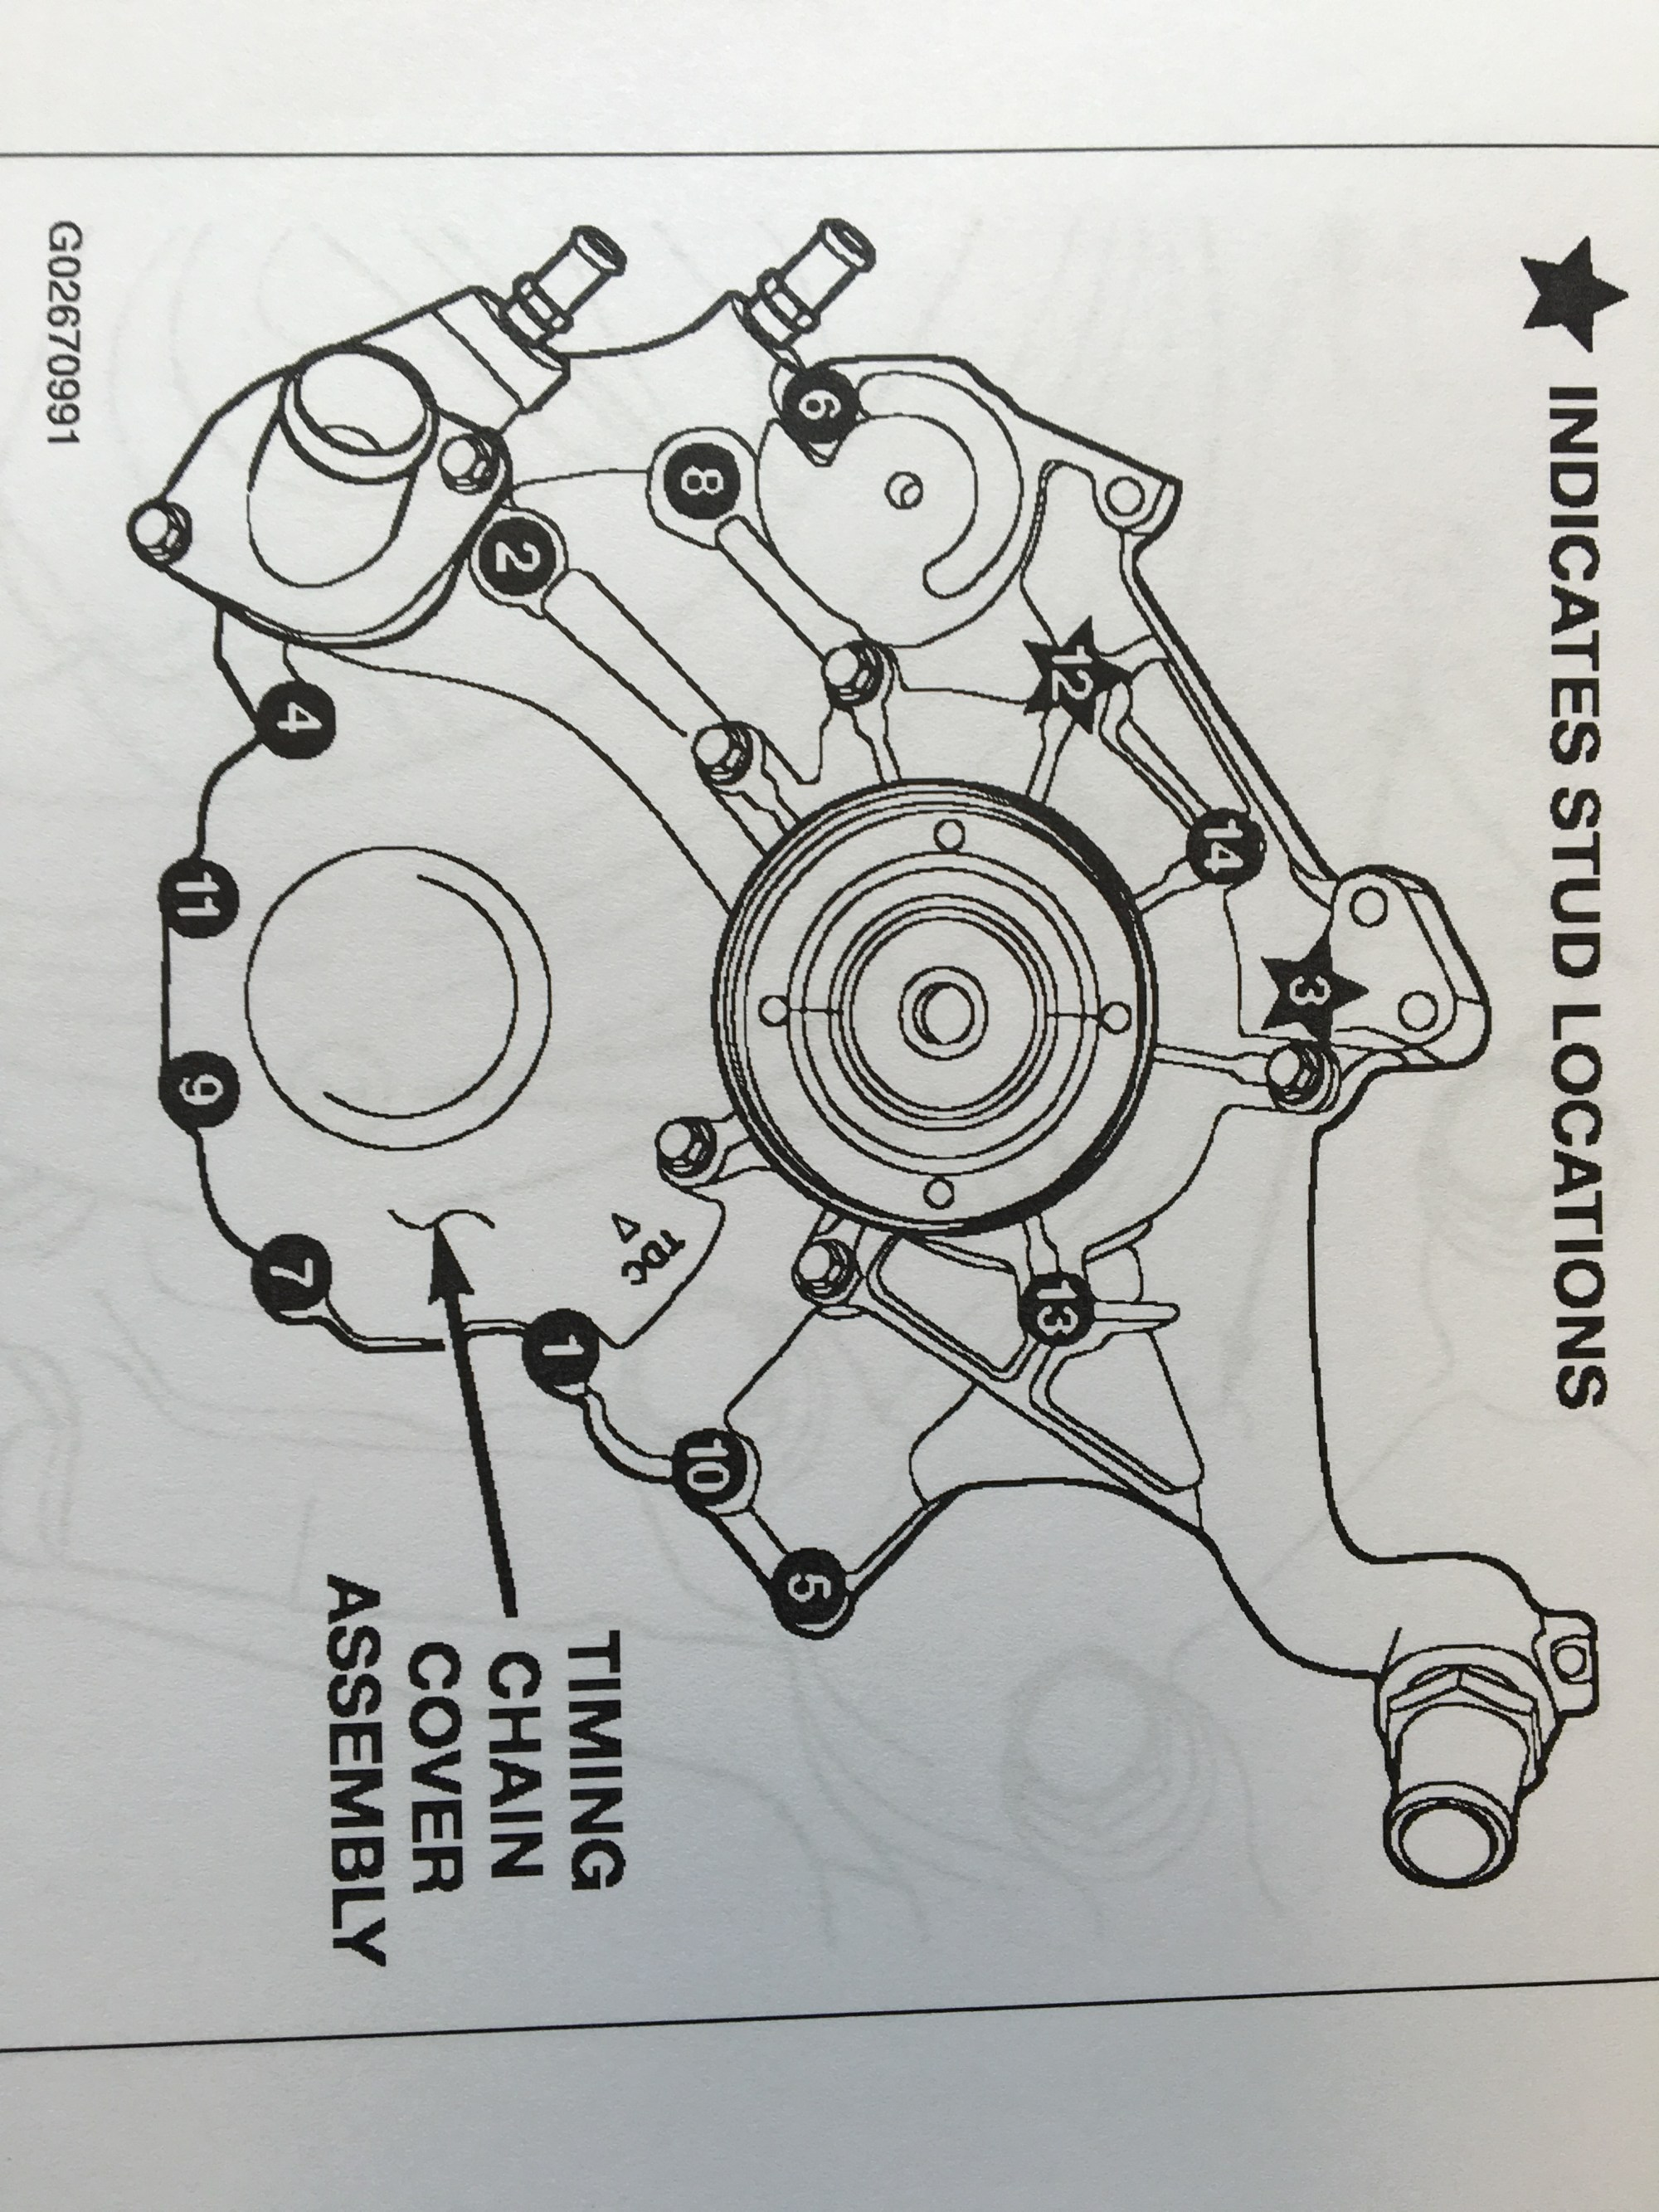 hight resolution of after removing all the timing cover bolts and studs remove any remaining gasket and or adhesive from the cover and engine block face being very careful not